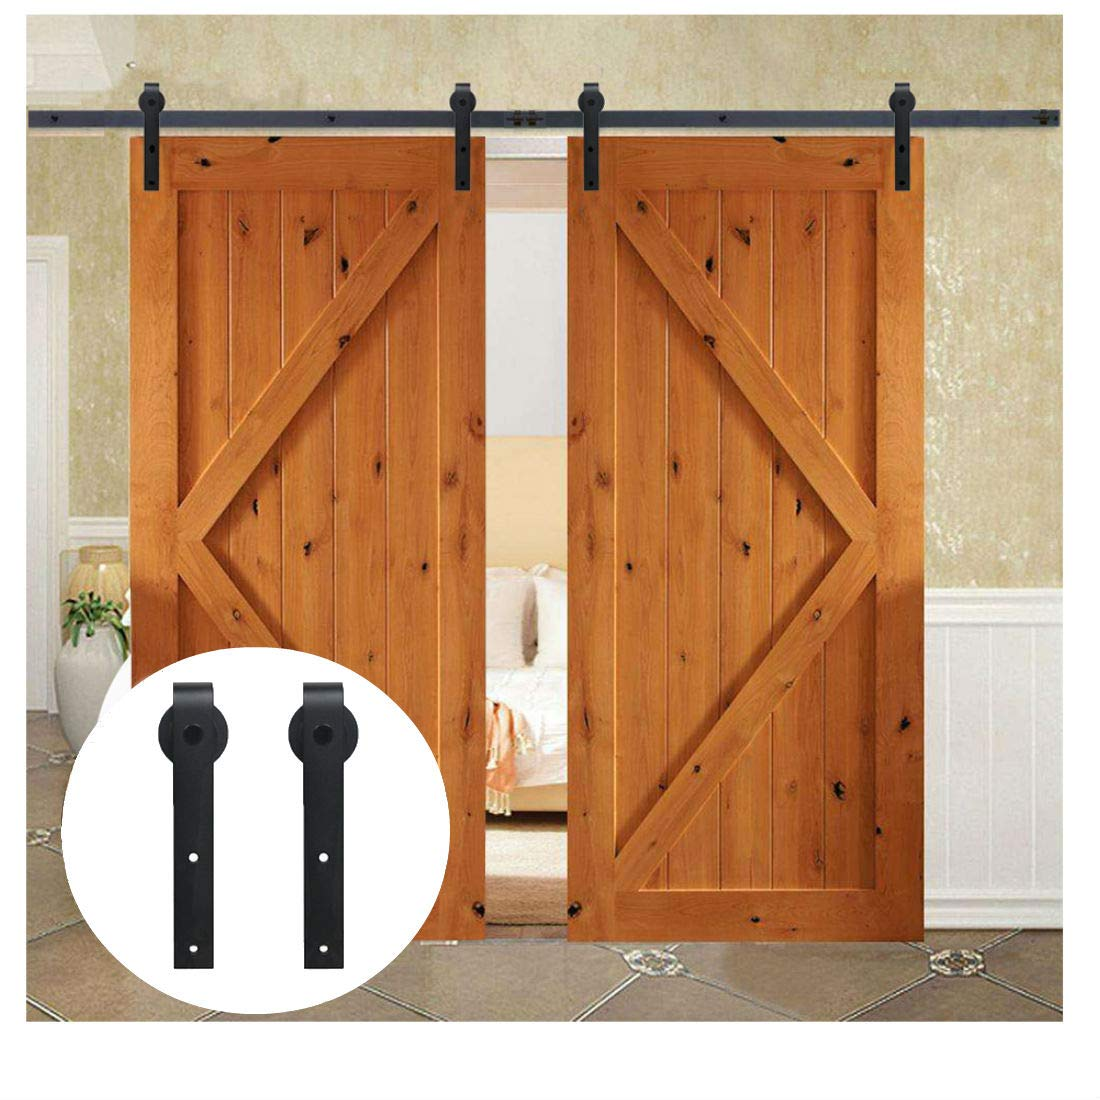 Amazon com: LWZH 9FT Double Sliding Barn Door Steel Hardware